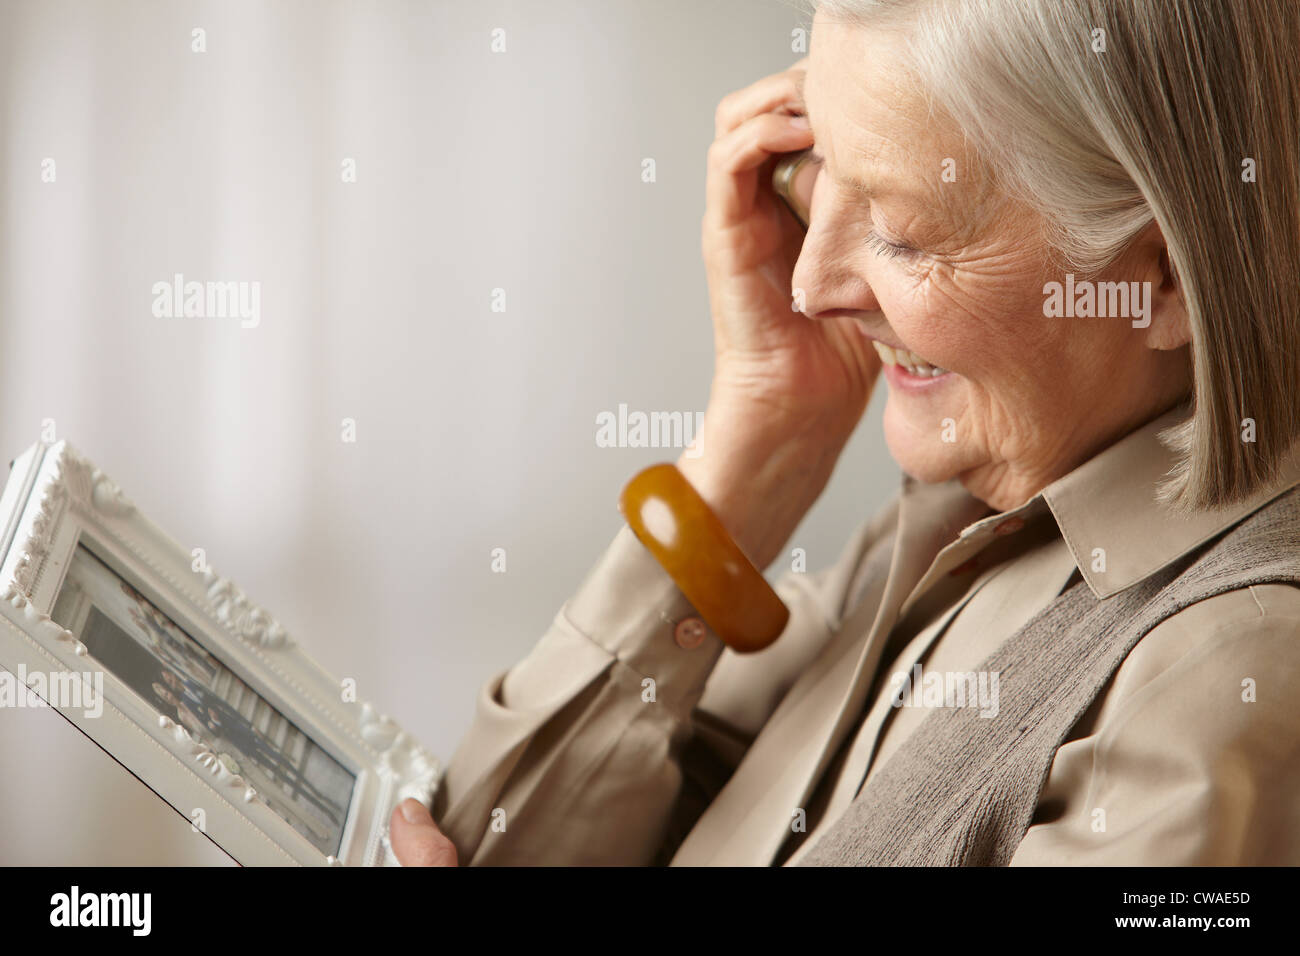 Senior woman holding picture frame - Stock Image